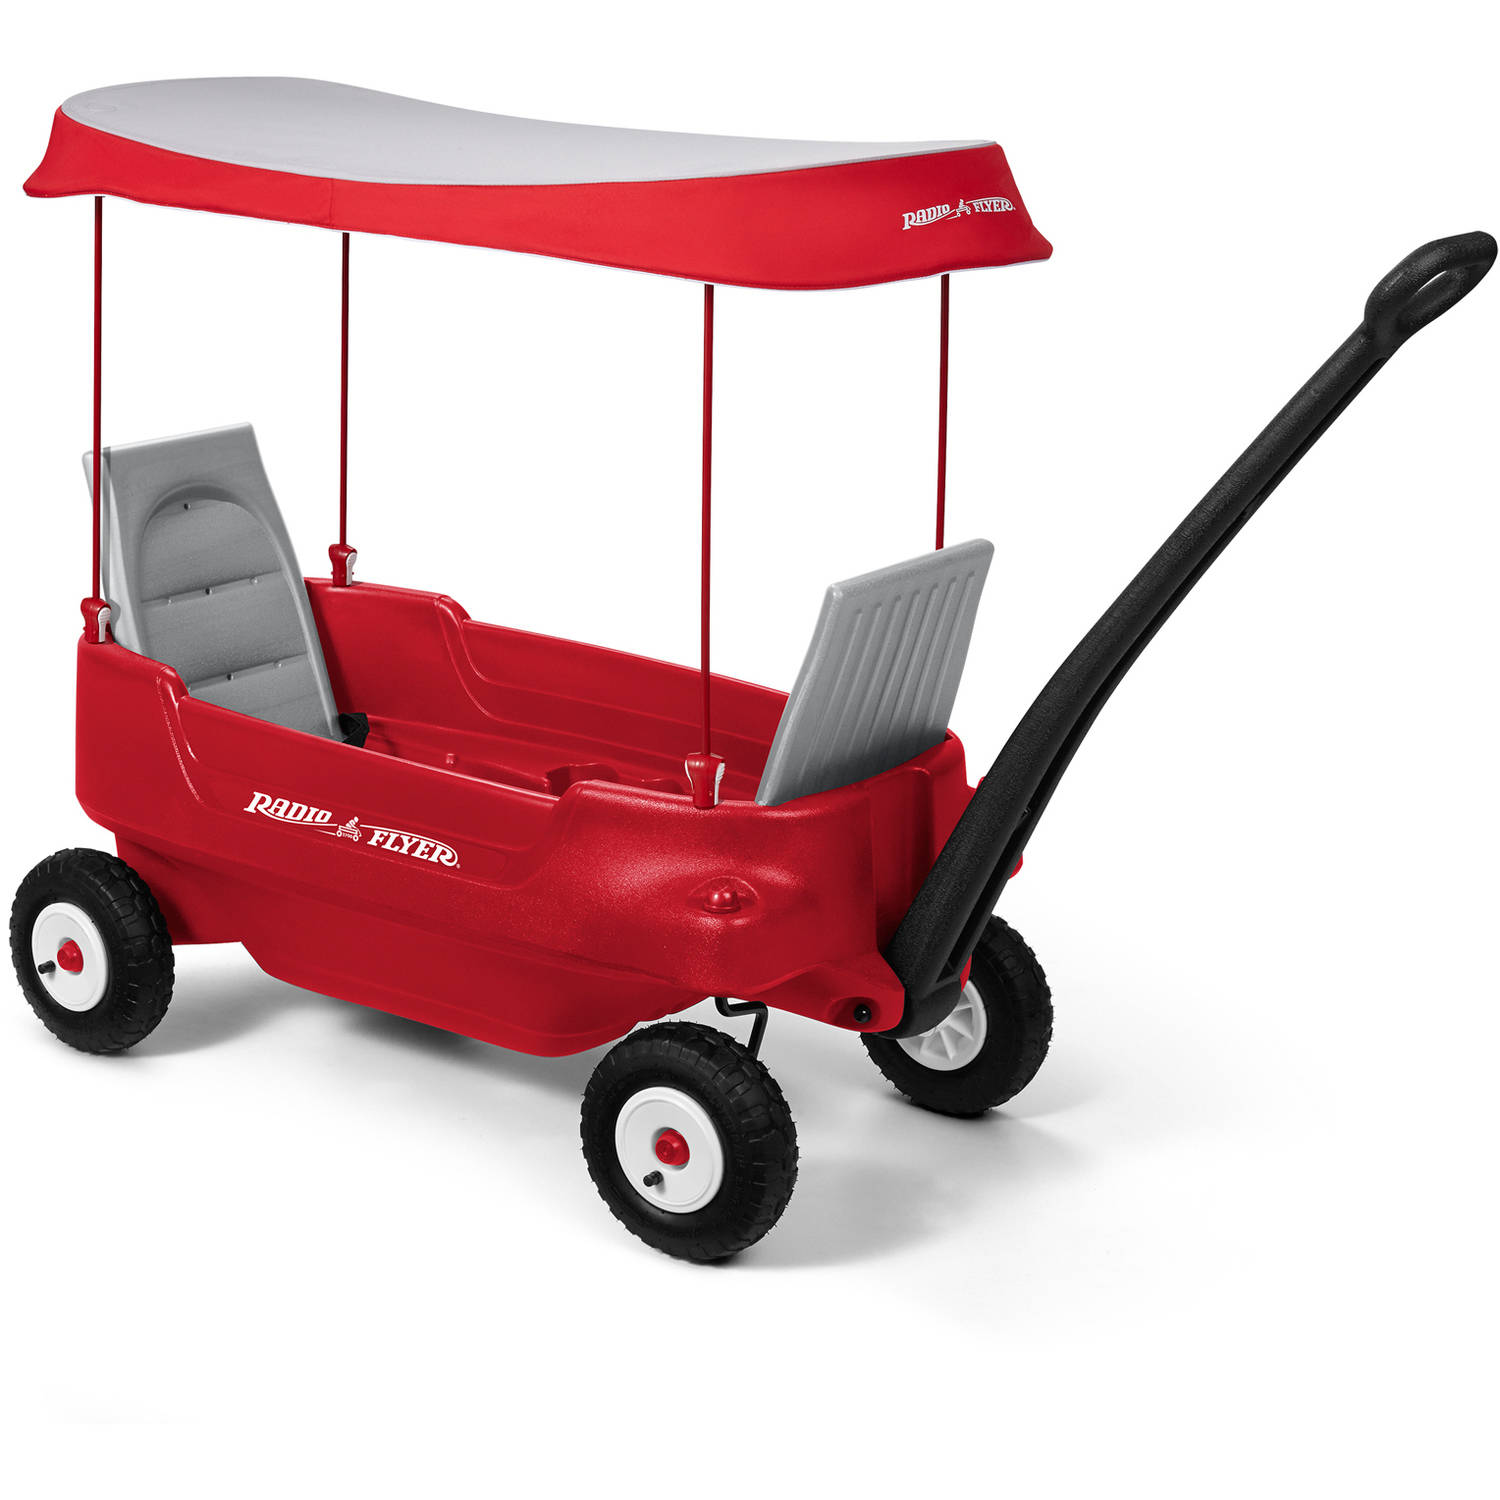 Radio Flyer Deluxe All-Terrain Pathfinder Wagon with Canopy by Radio Flyer Inc.